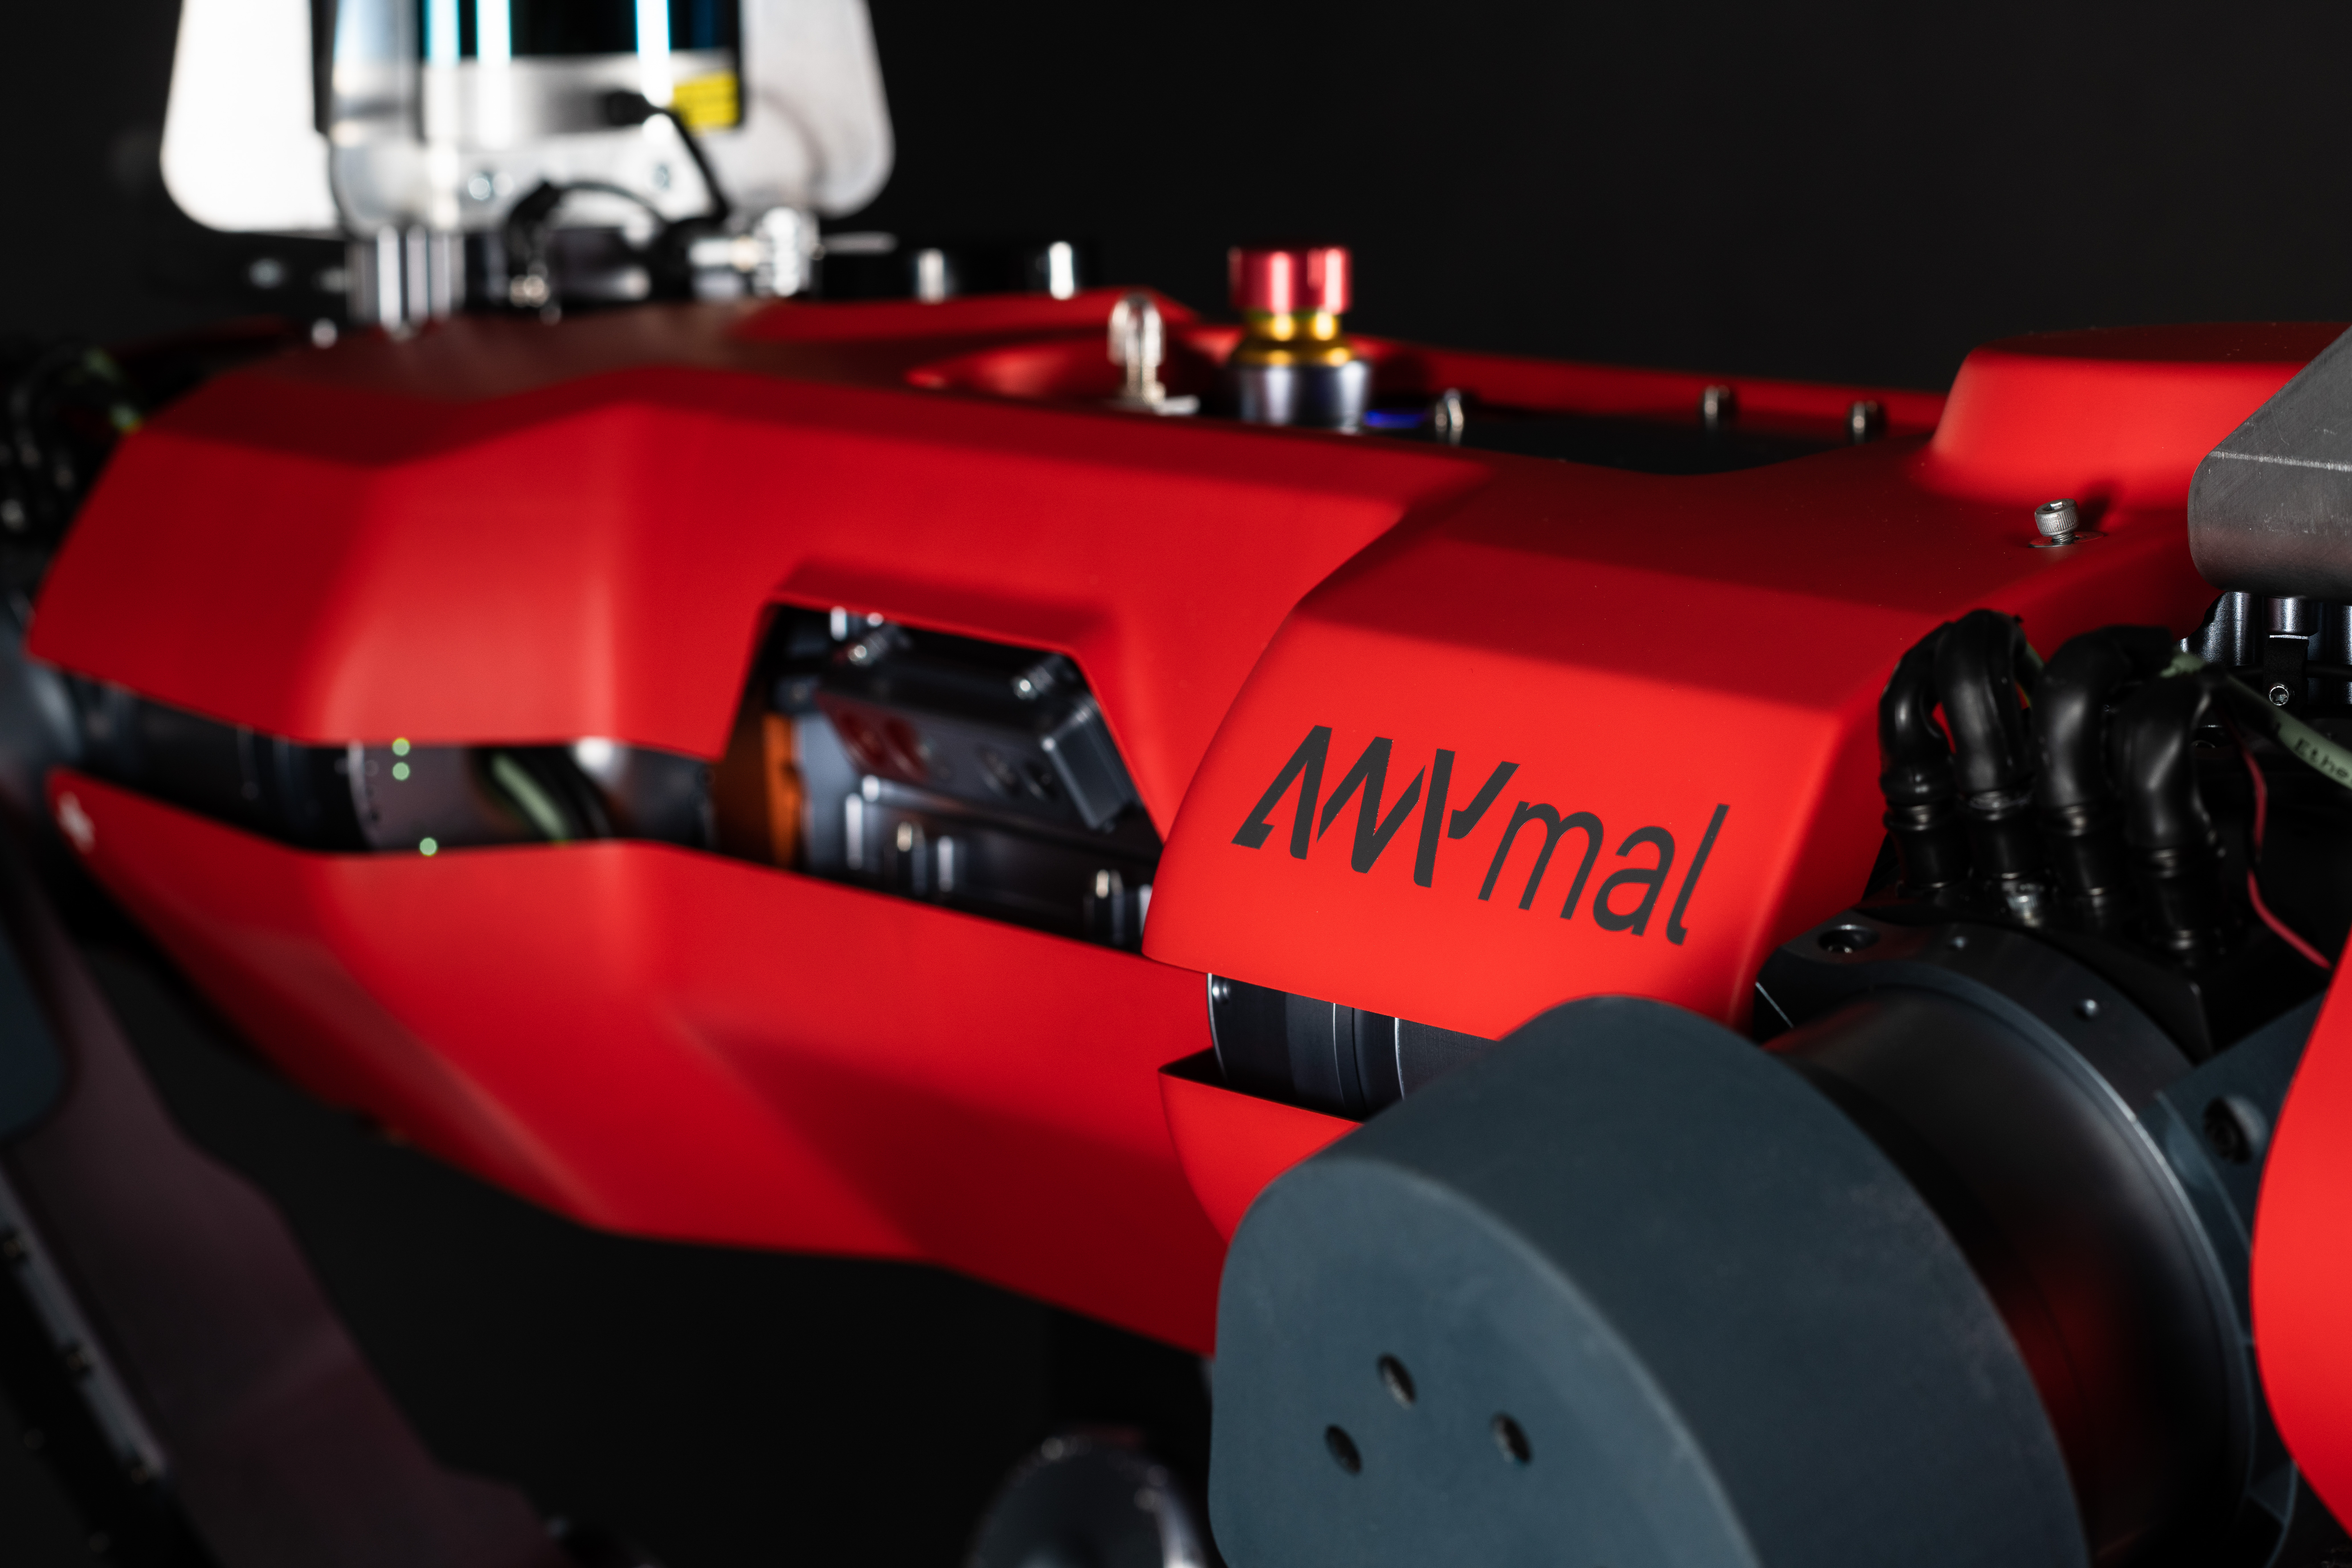 ANYmal C legged robot is optimized for industrial inspection